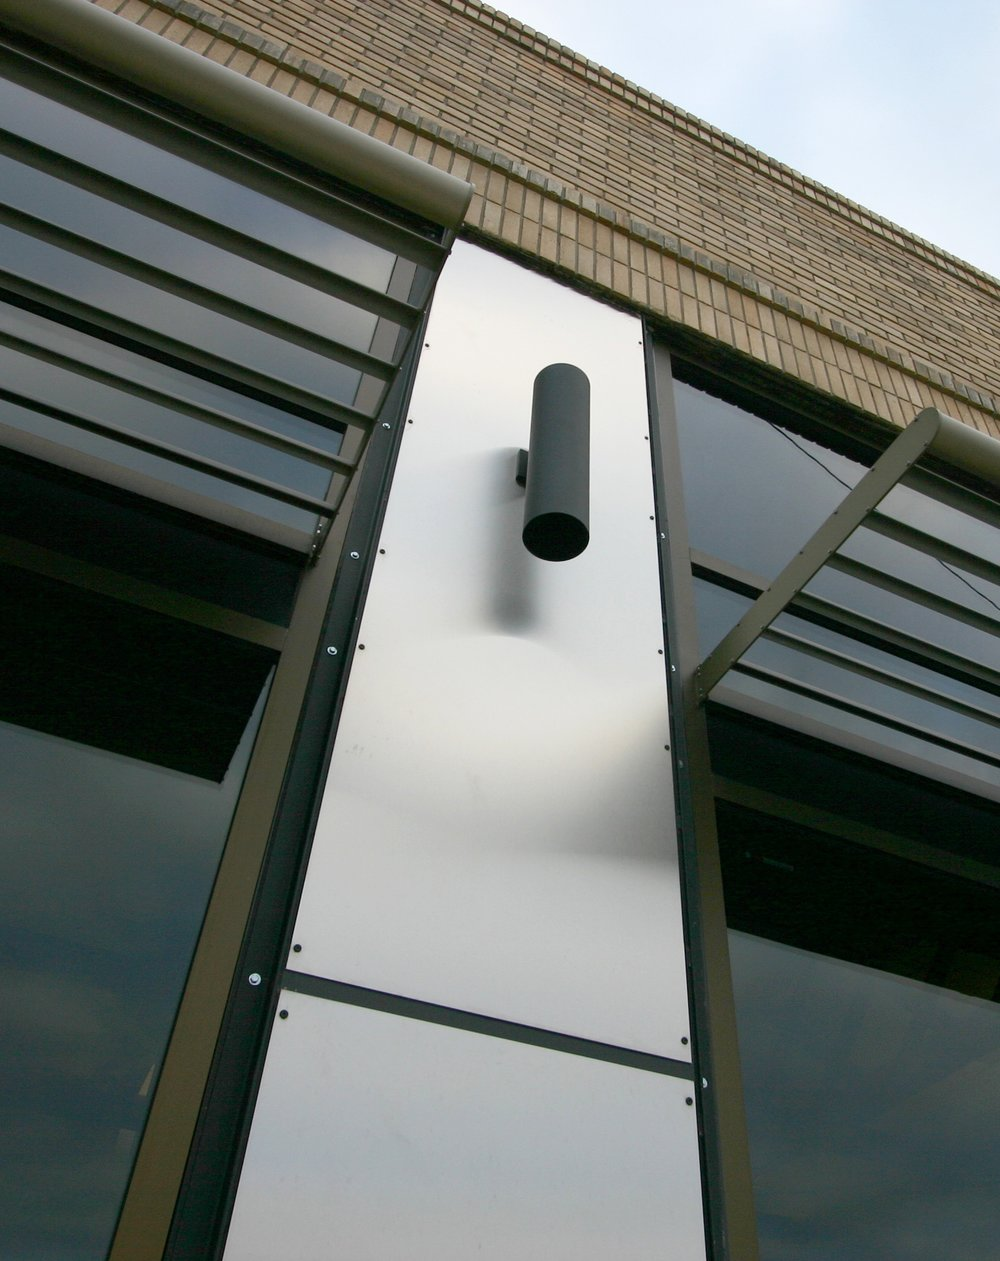 stainless column and sconce.jpg